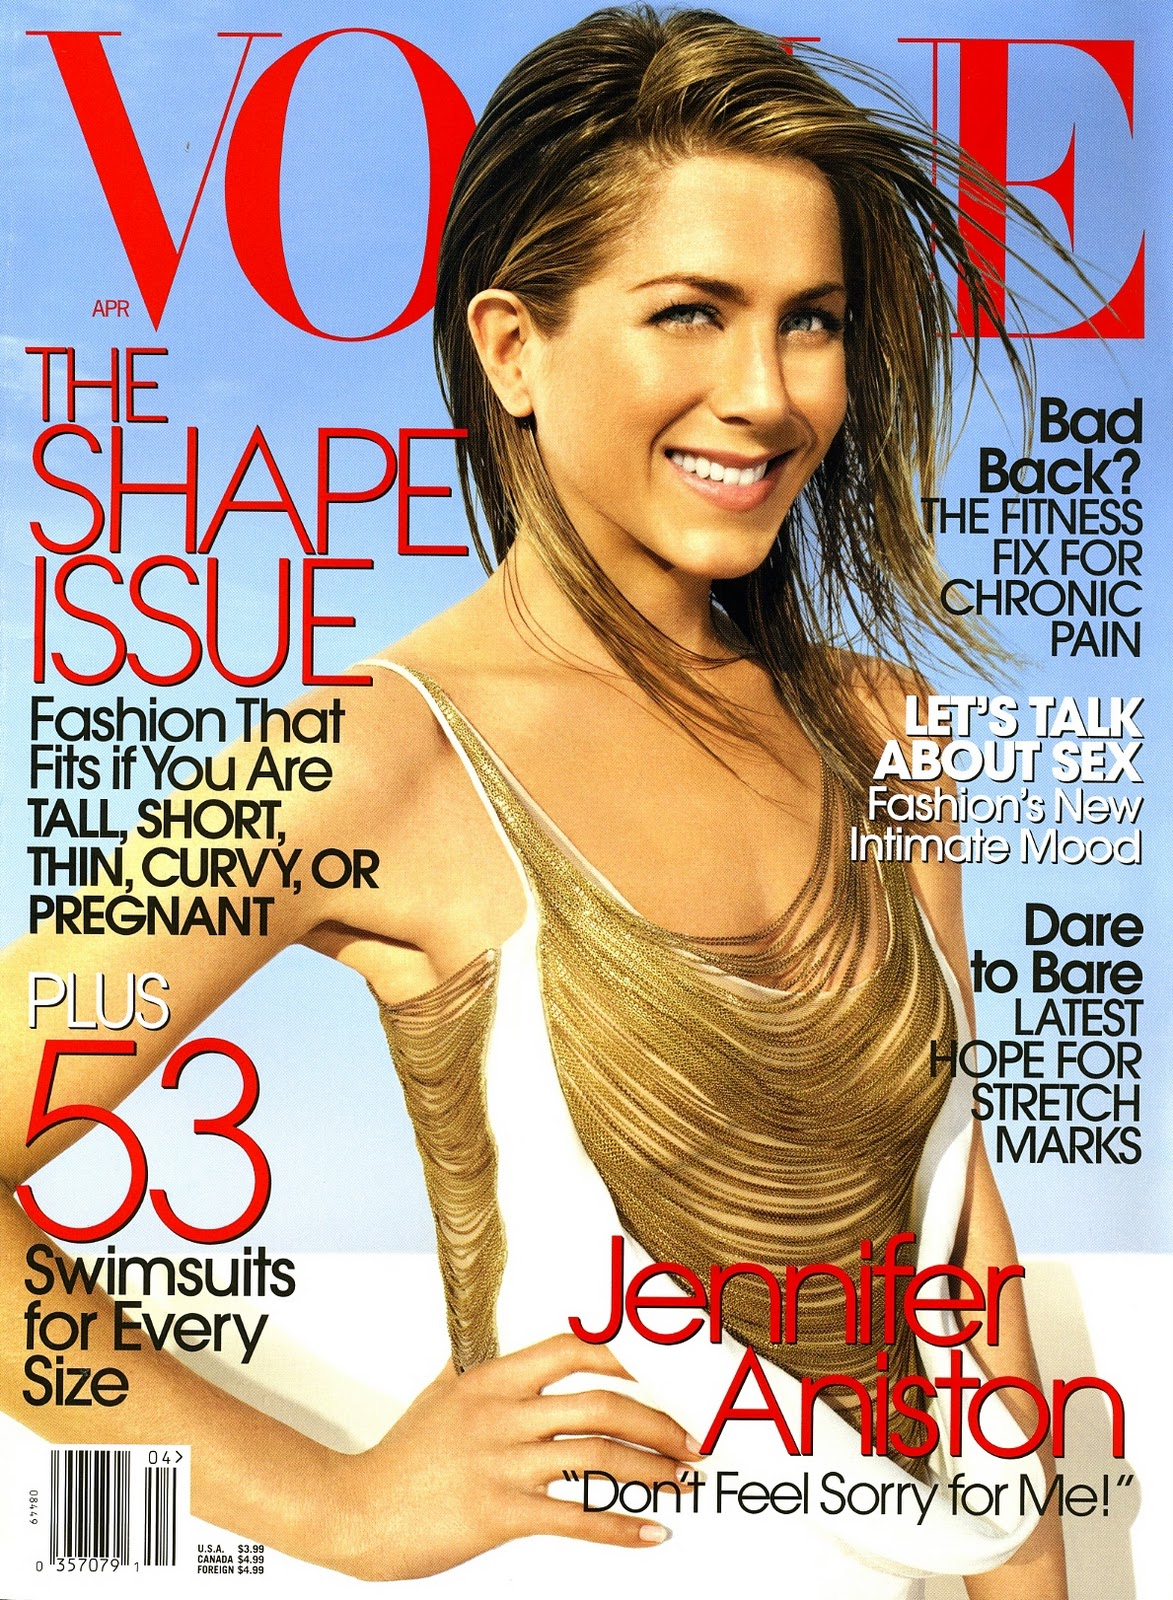 Fashion Flashback: Jennifer Aniston Covers Vogue April 2006